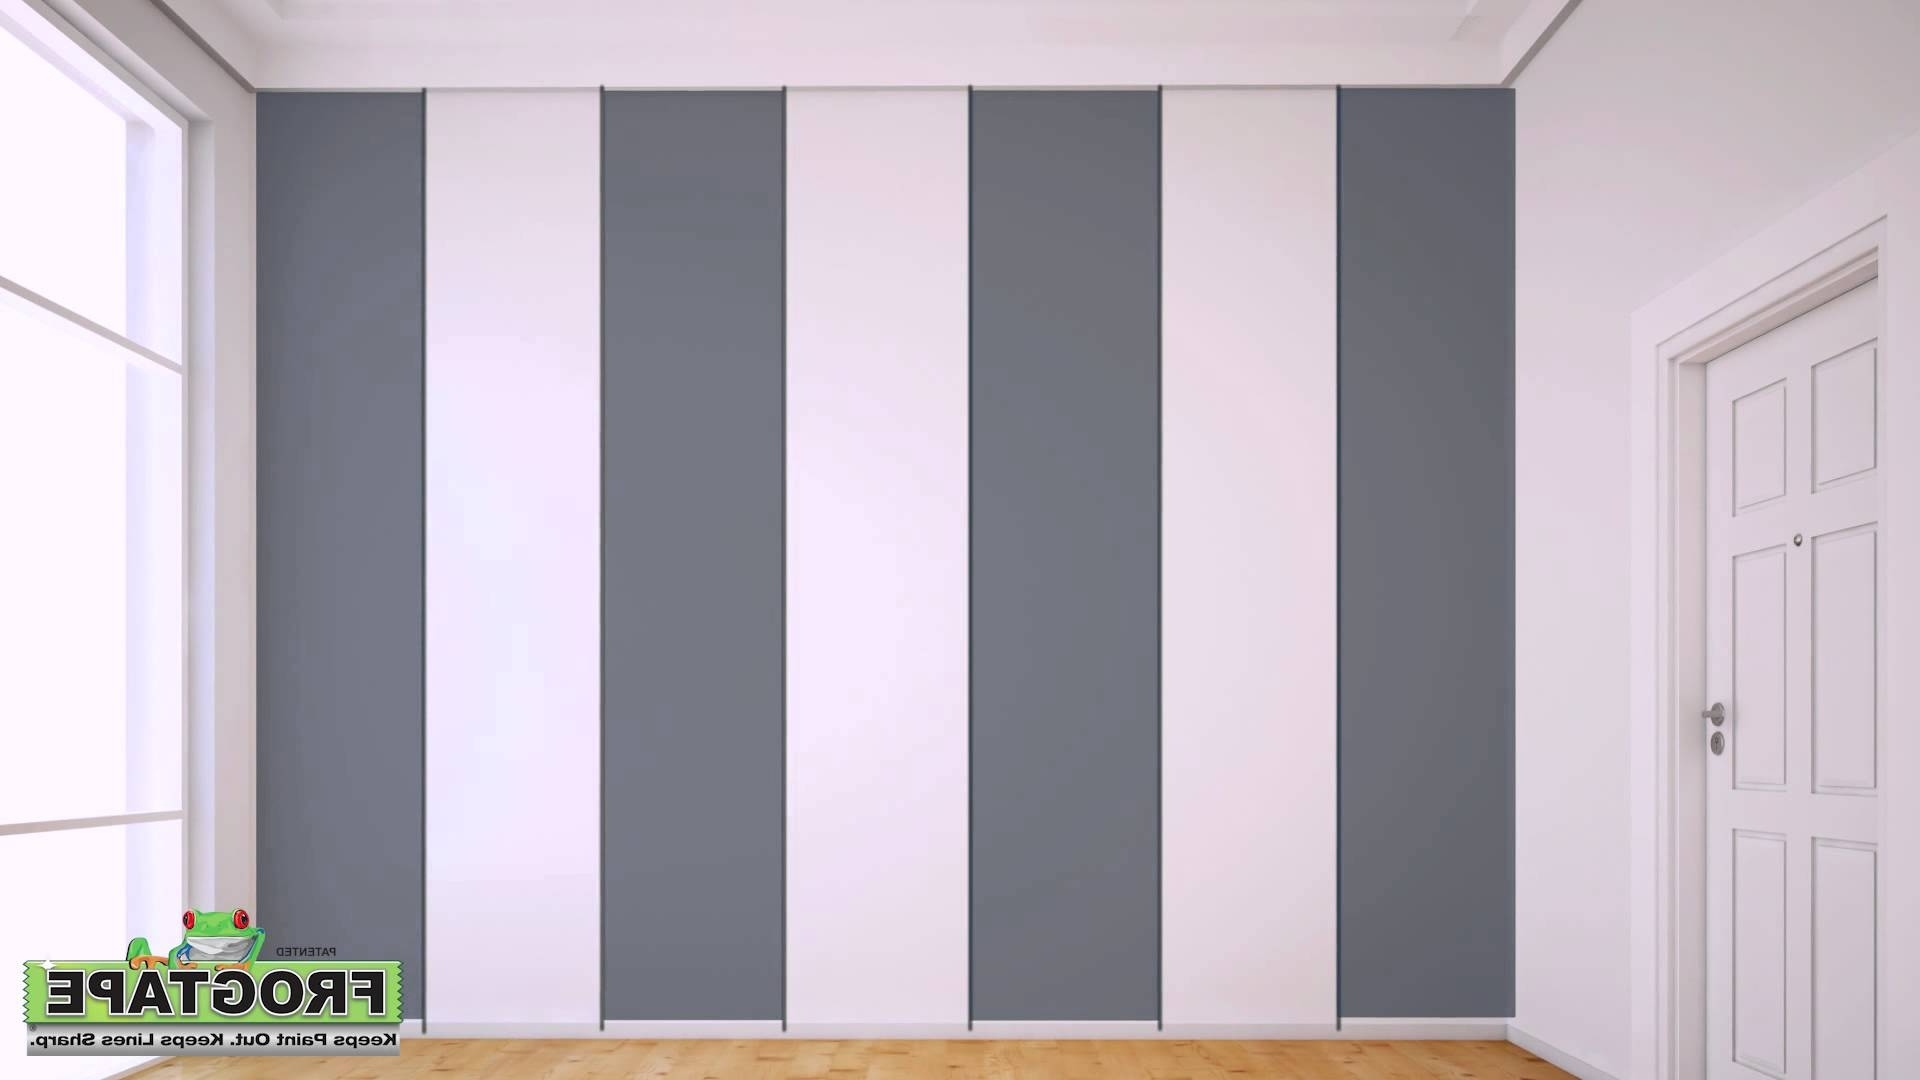 Most Current How To Paint Stripes On A Wall – Youtube Inside Vertical Stripes Wall Accents (View 8 of 15)